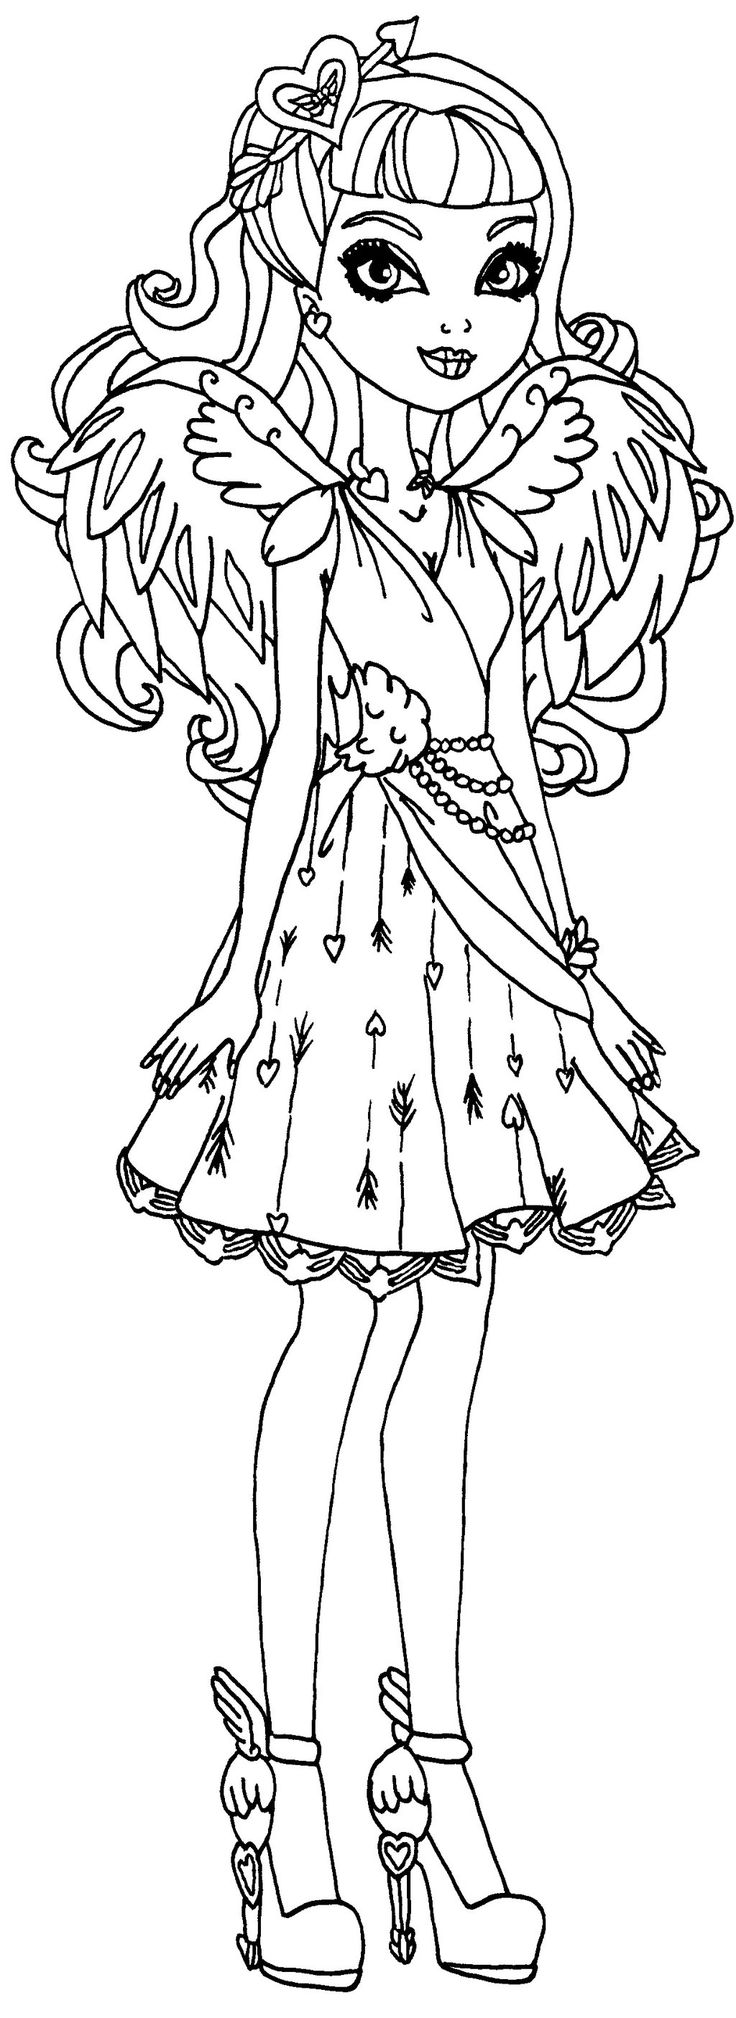 the pretty young girl from ever after high beautiful coloring page printable